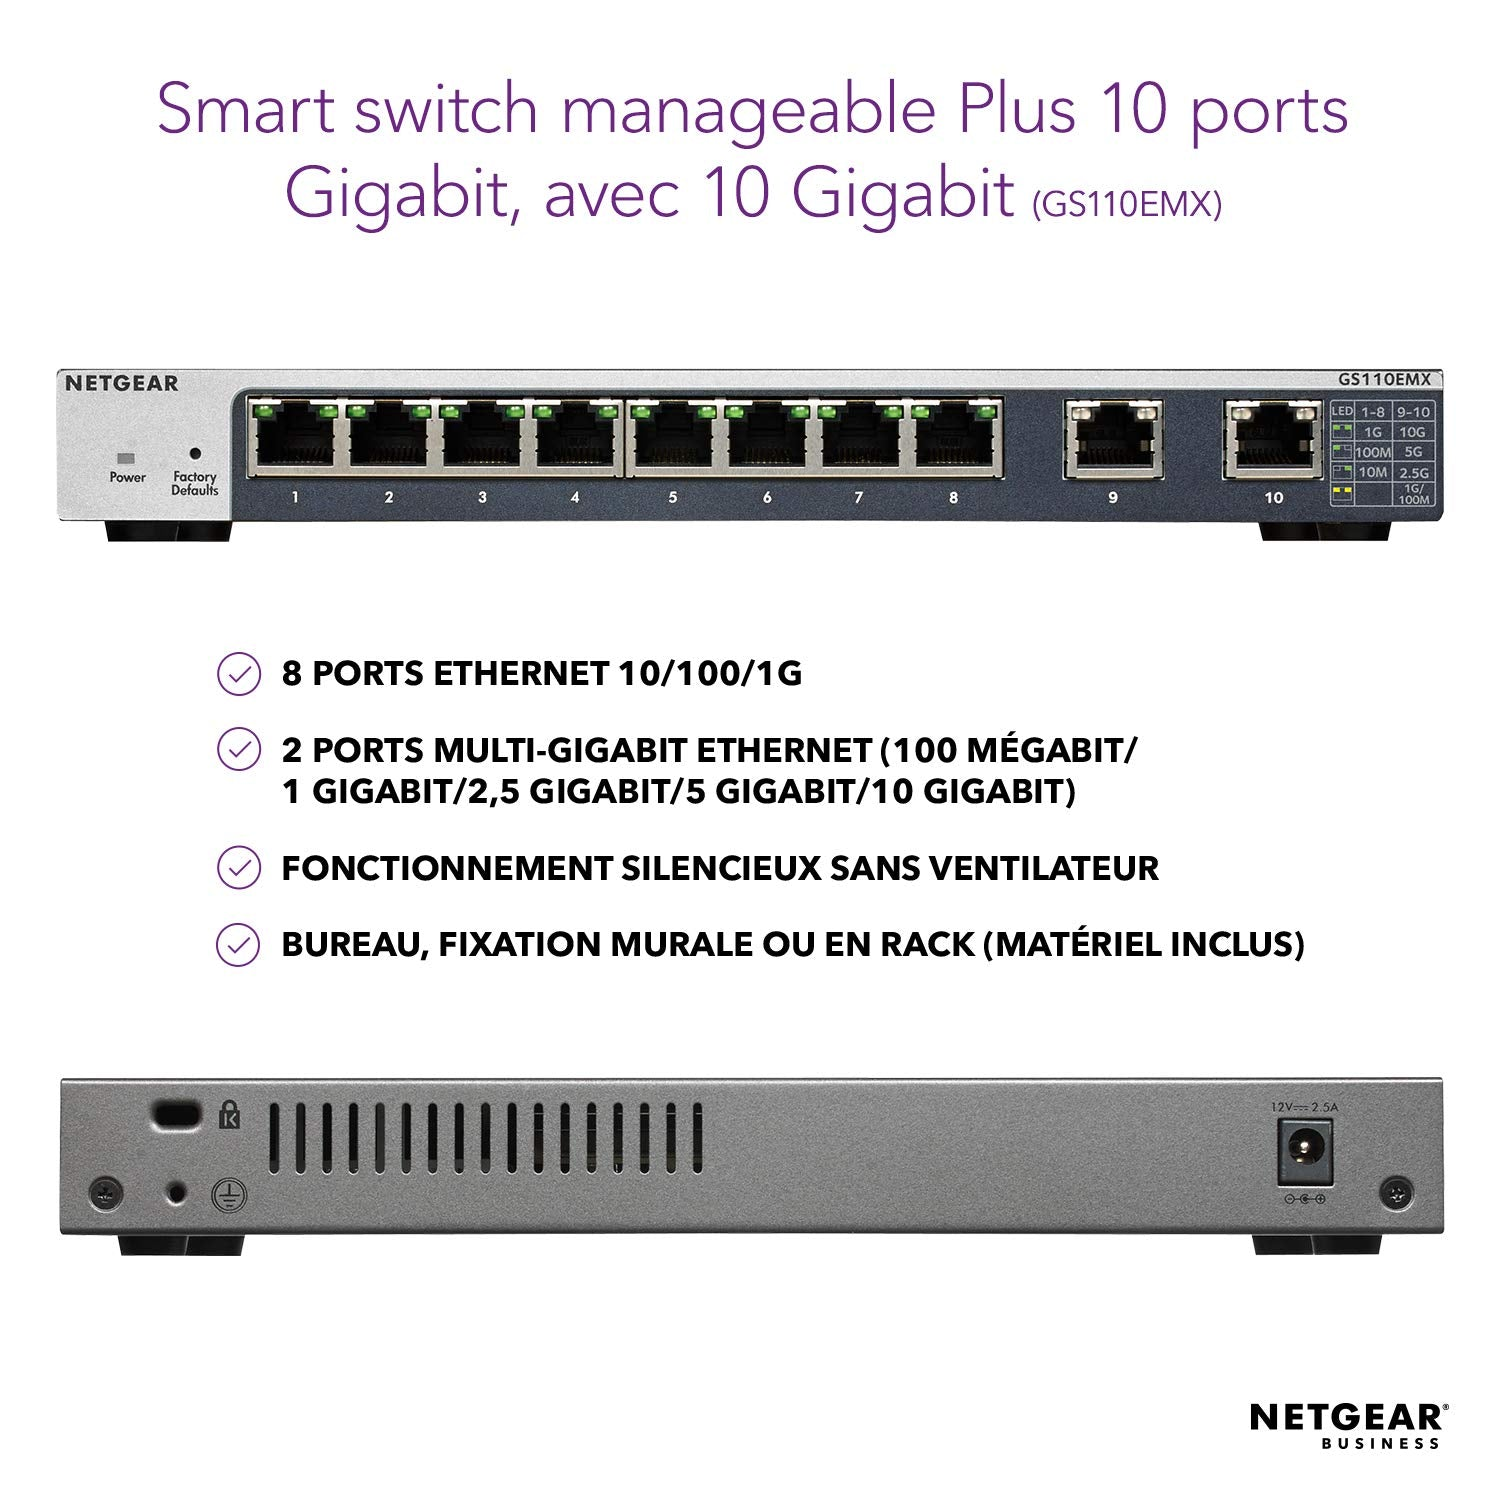 NETGEAR Switch Ethernet gigabit 8 Ports 10/100/1000 mbps (GS110EMX) Smart Manageable plus avec 2 Ports 10G/Multi-gig  Format Bureau  Silencieux  ProS